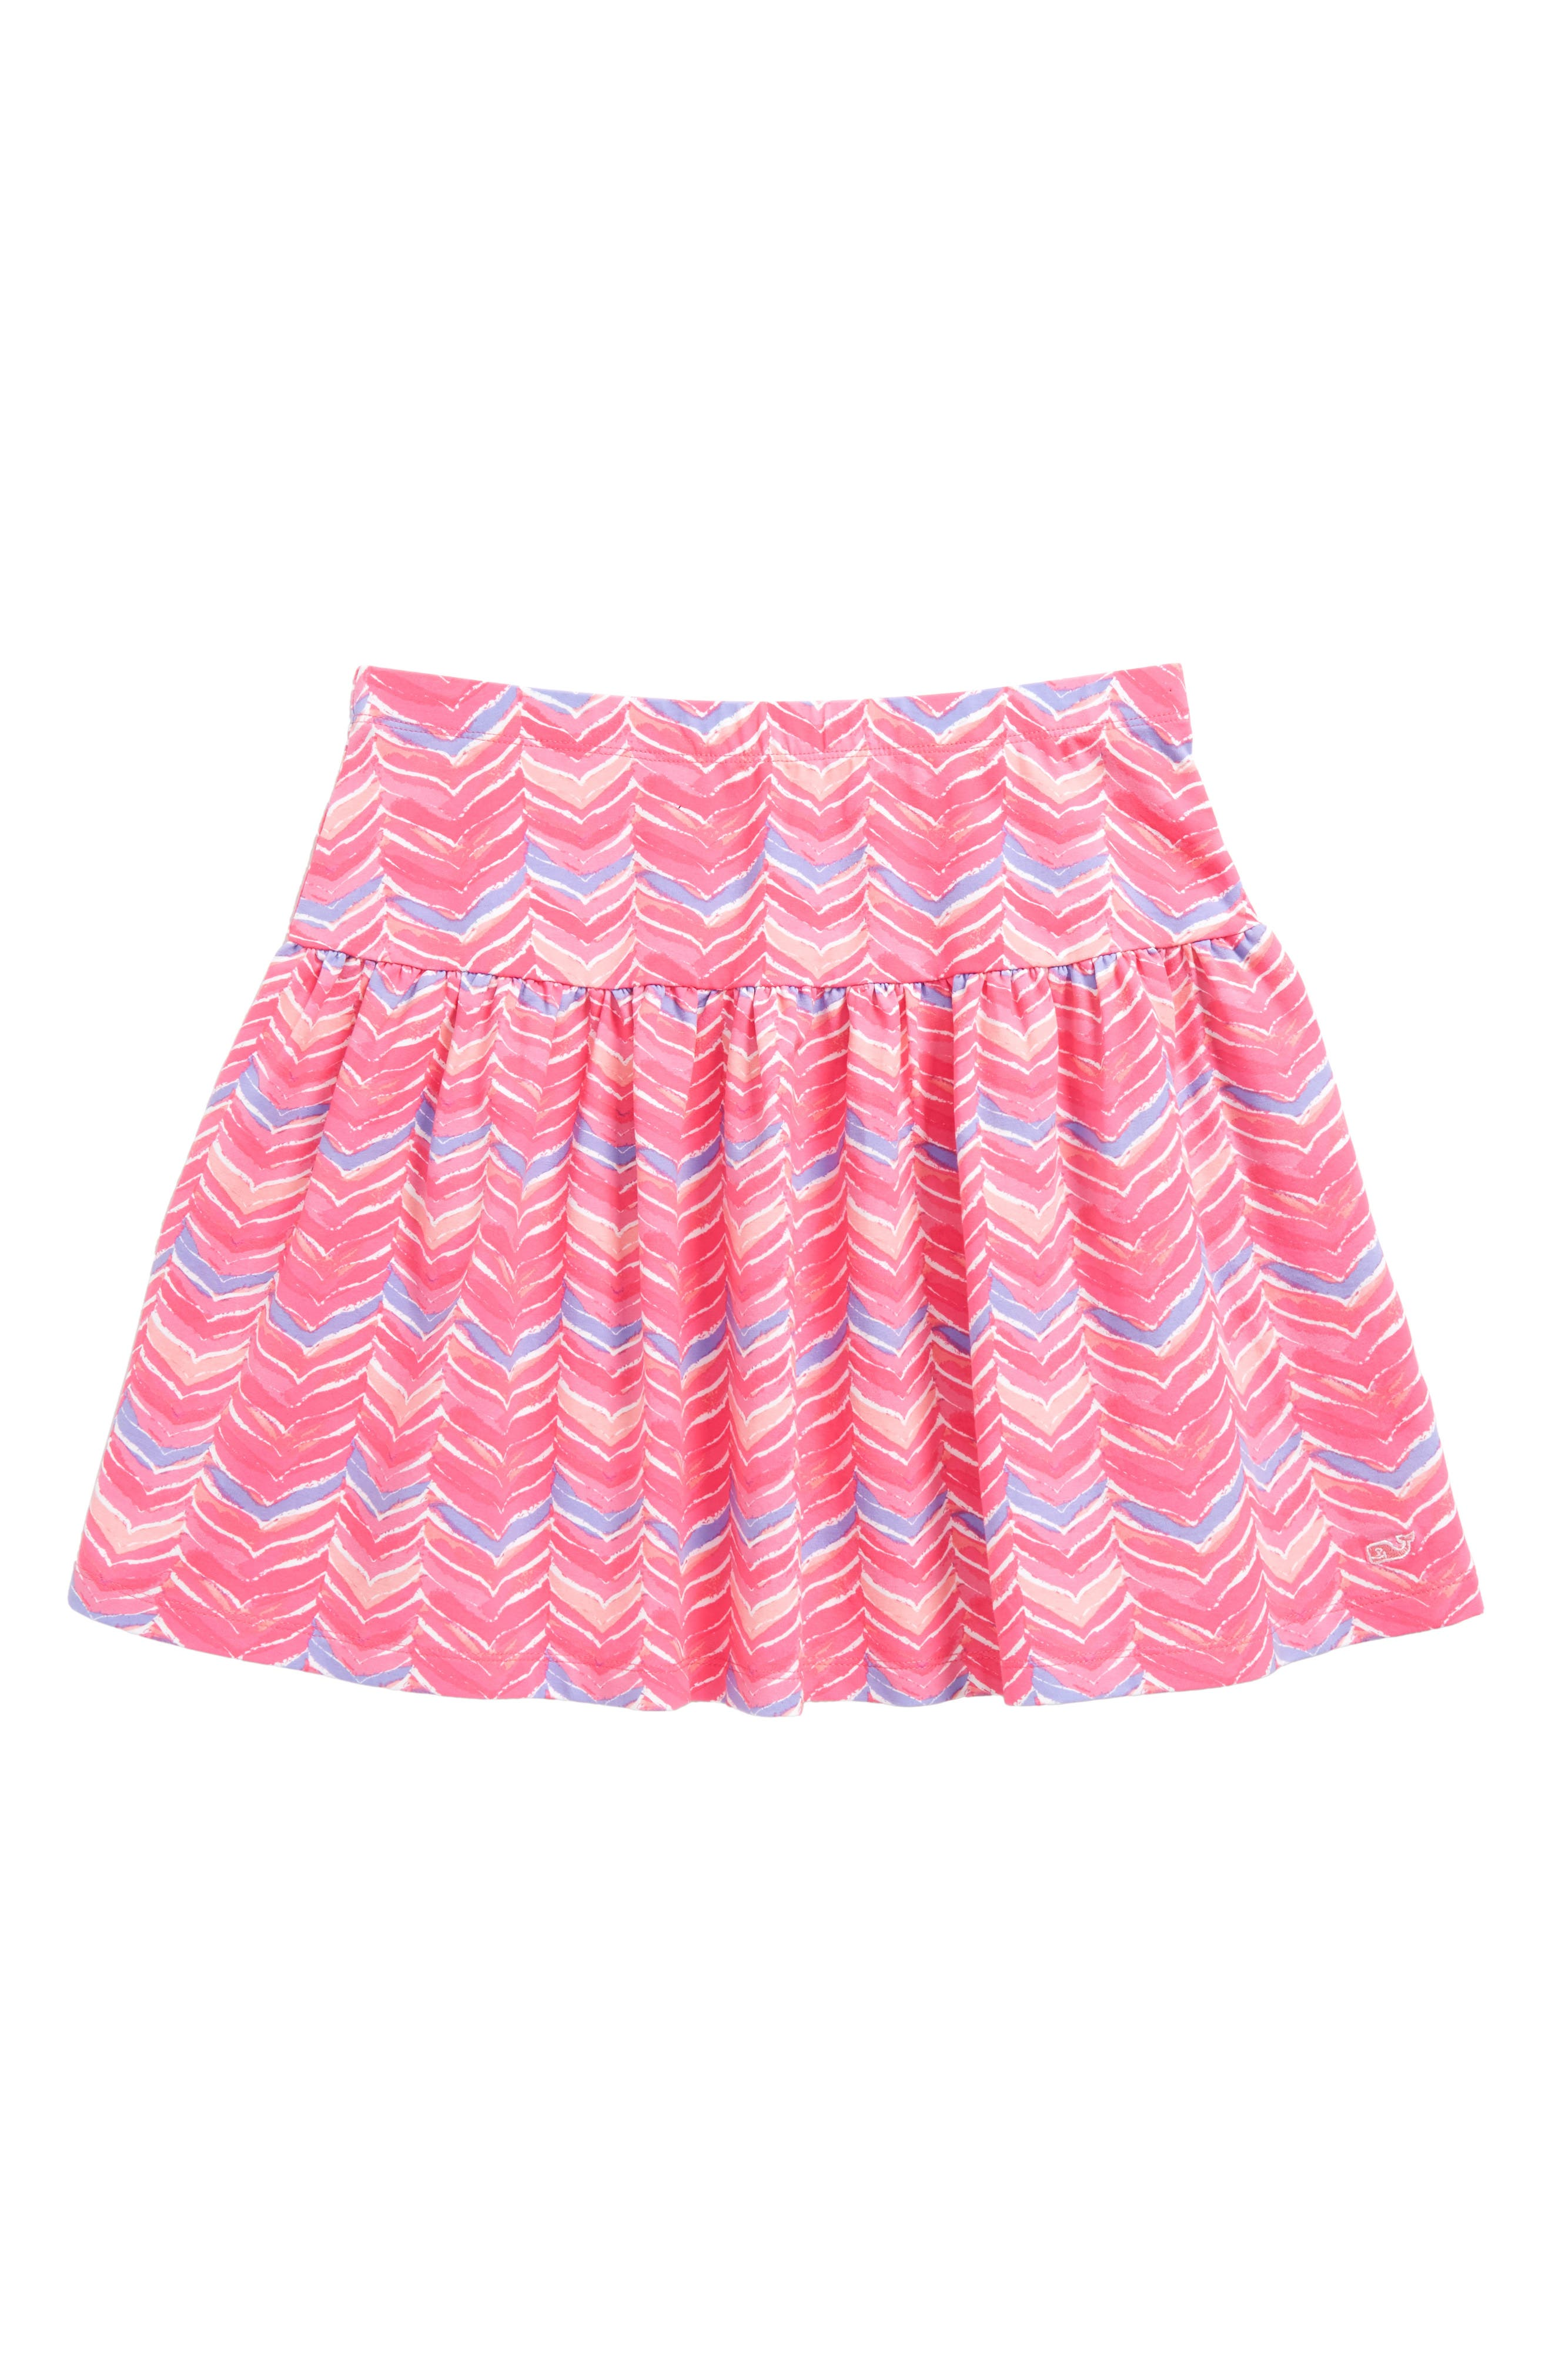 Watercolor Whale Tail Print Skirt,                         Main,                         color, Pink Sherbet